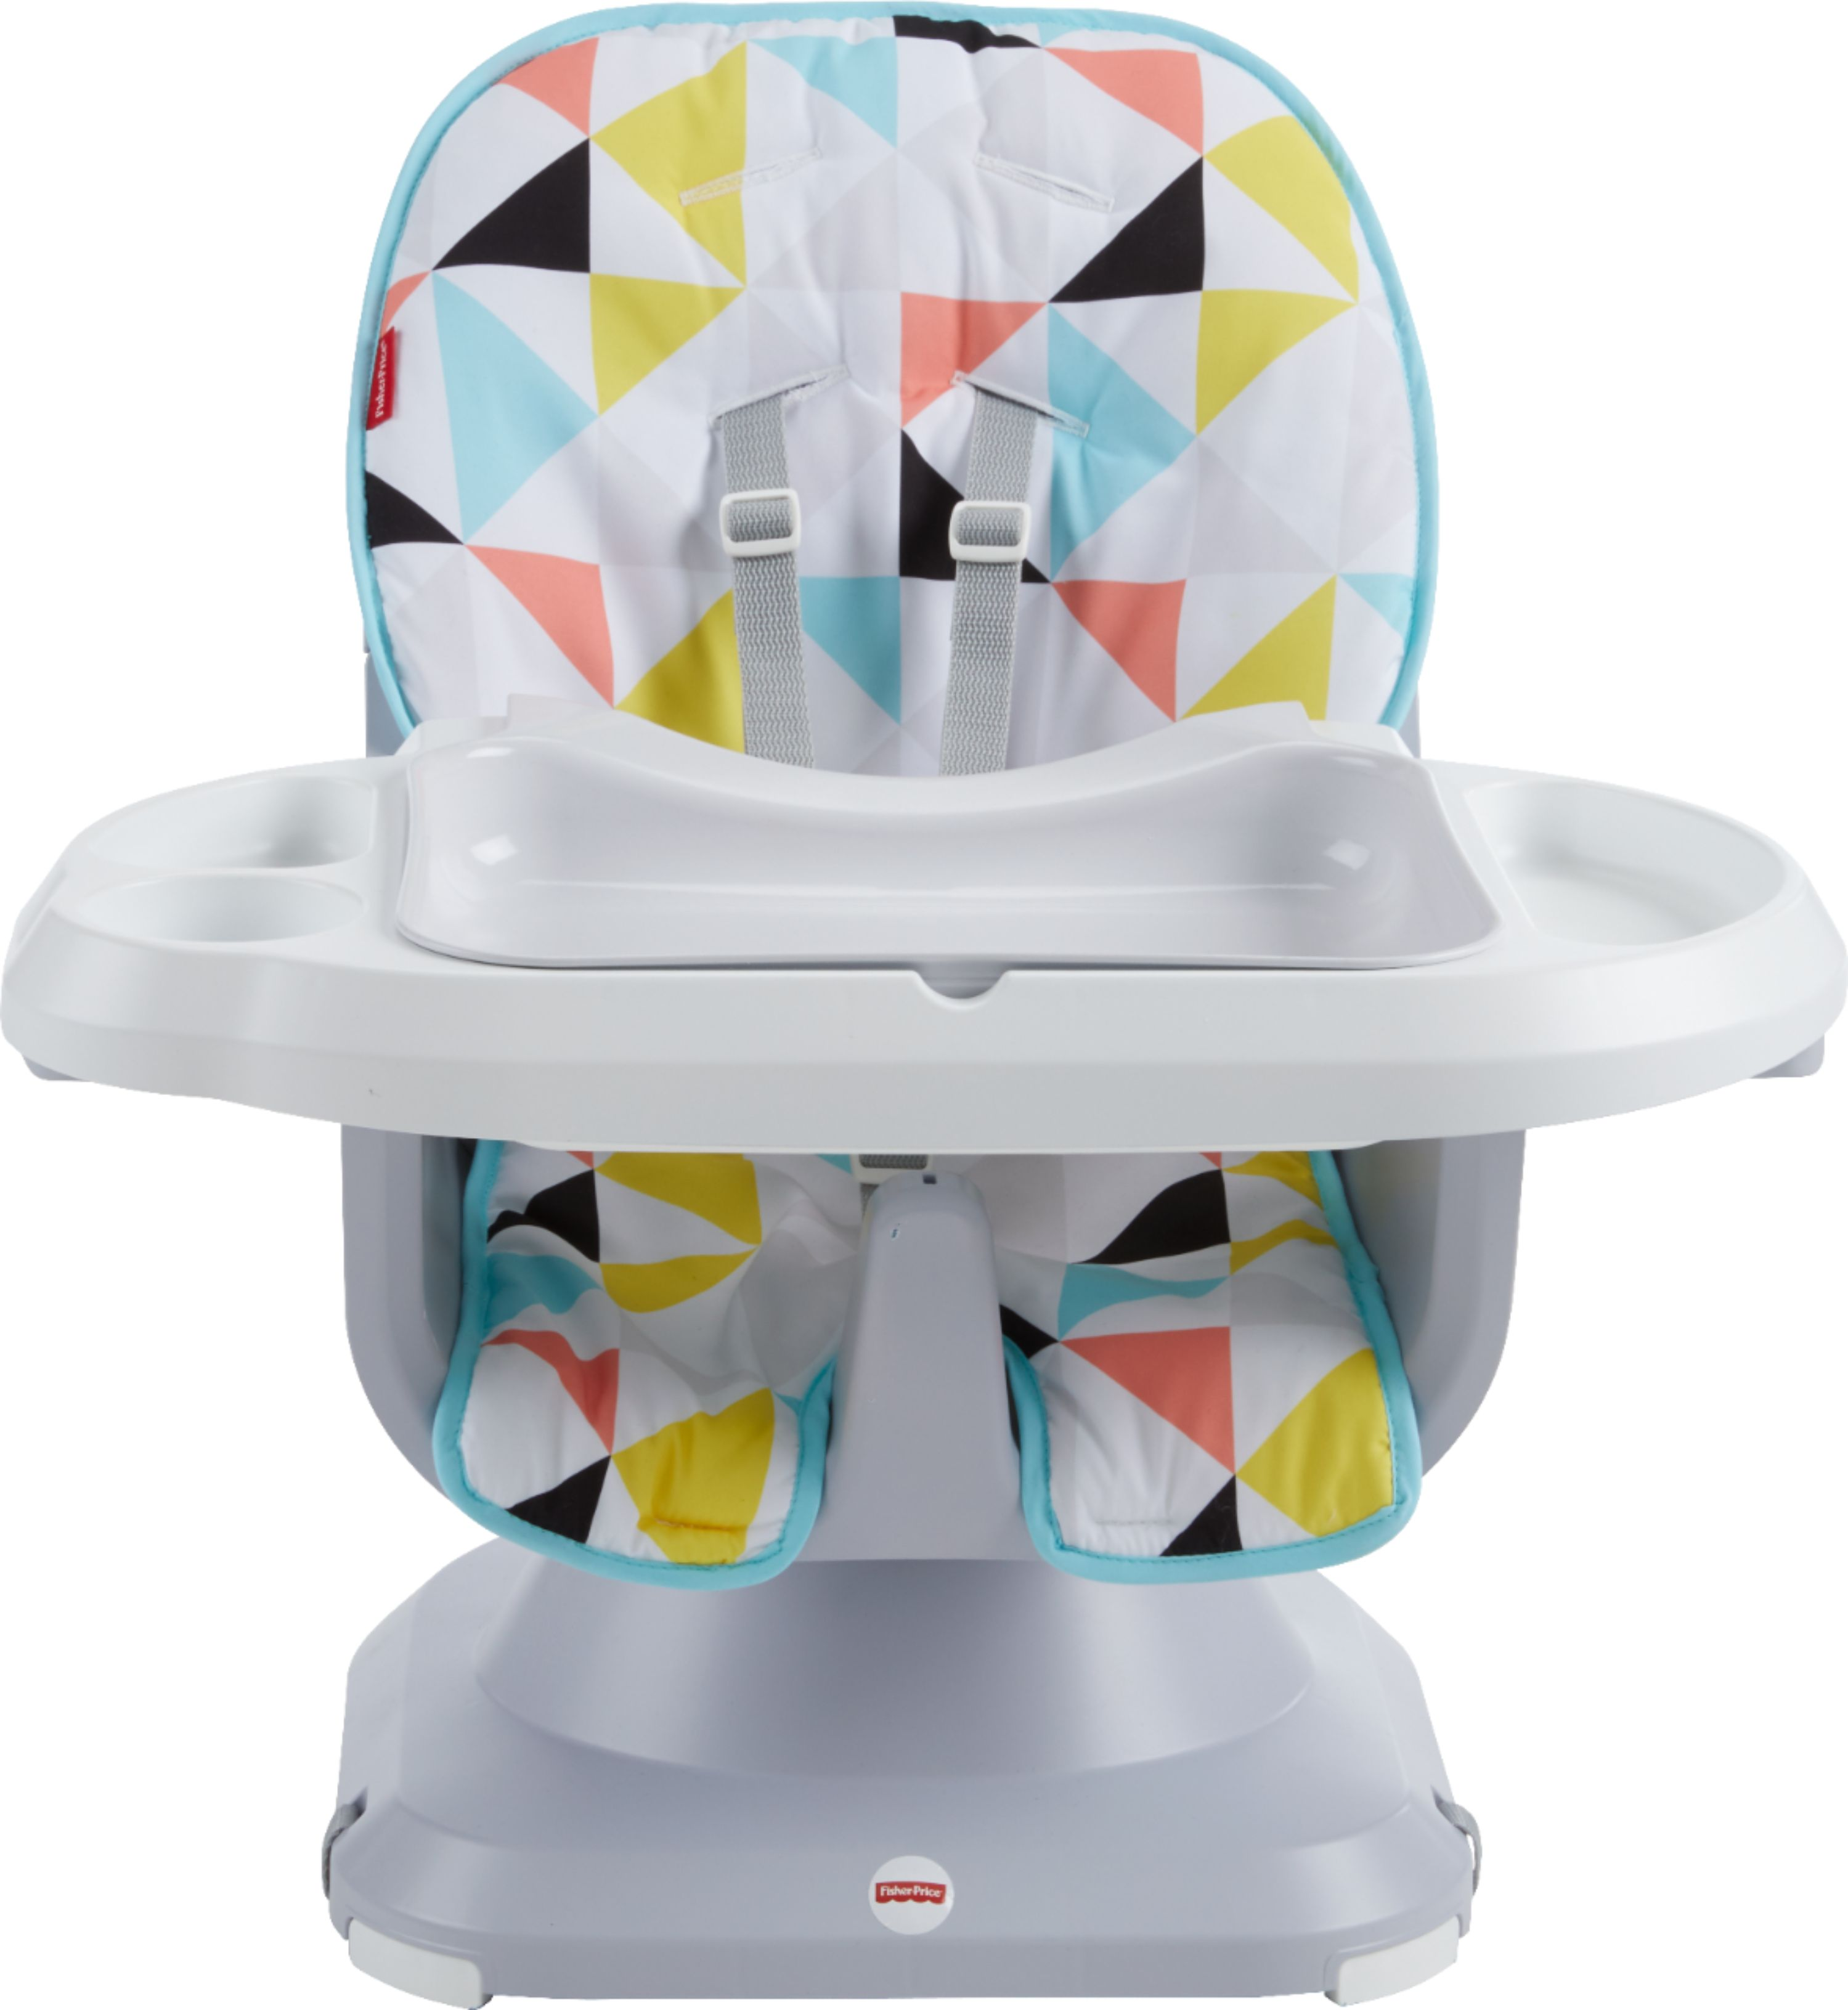 fisher price spacesaver high chair cover outdoor table and set gray flg95 best buy multi front zoom